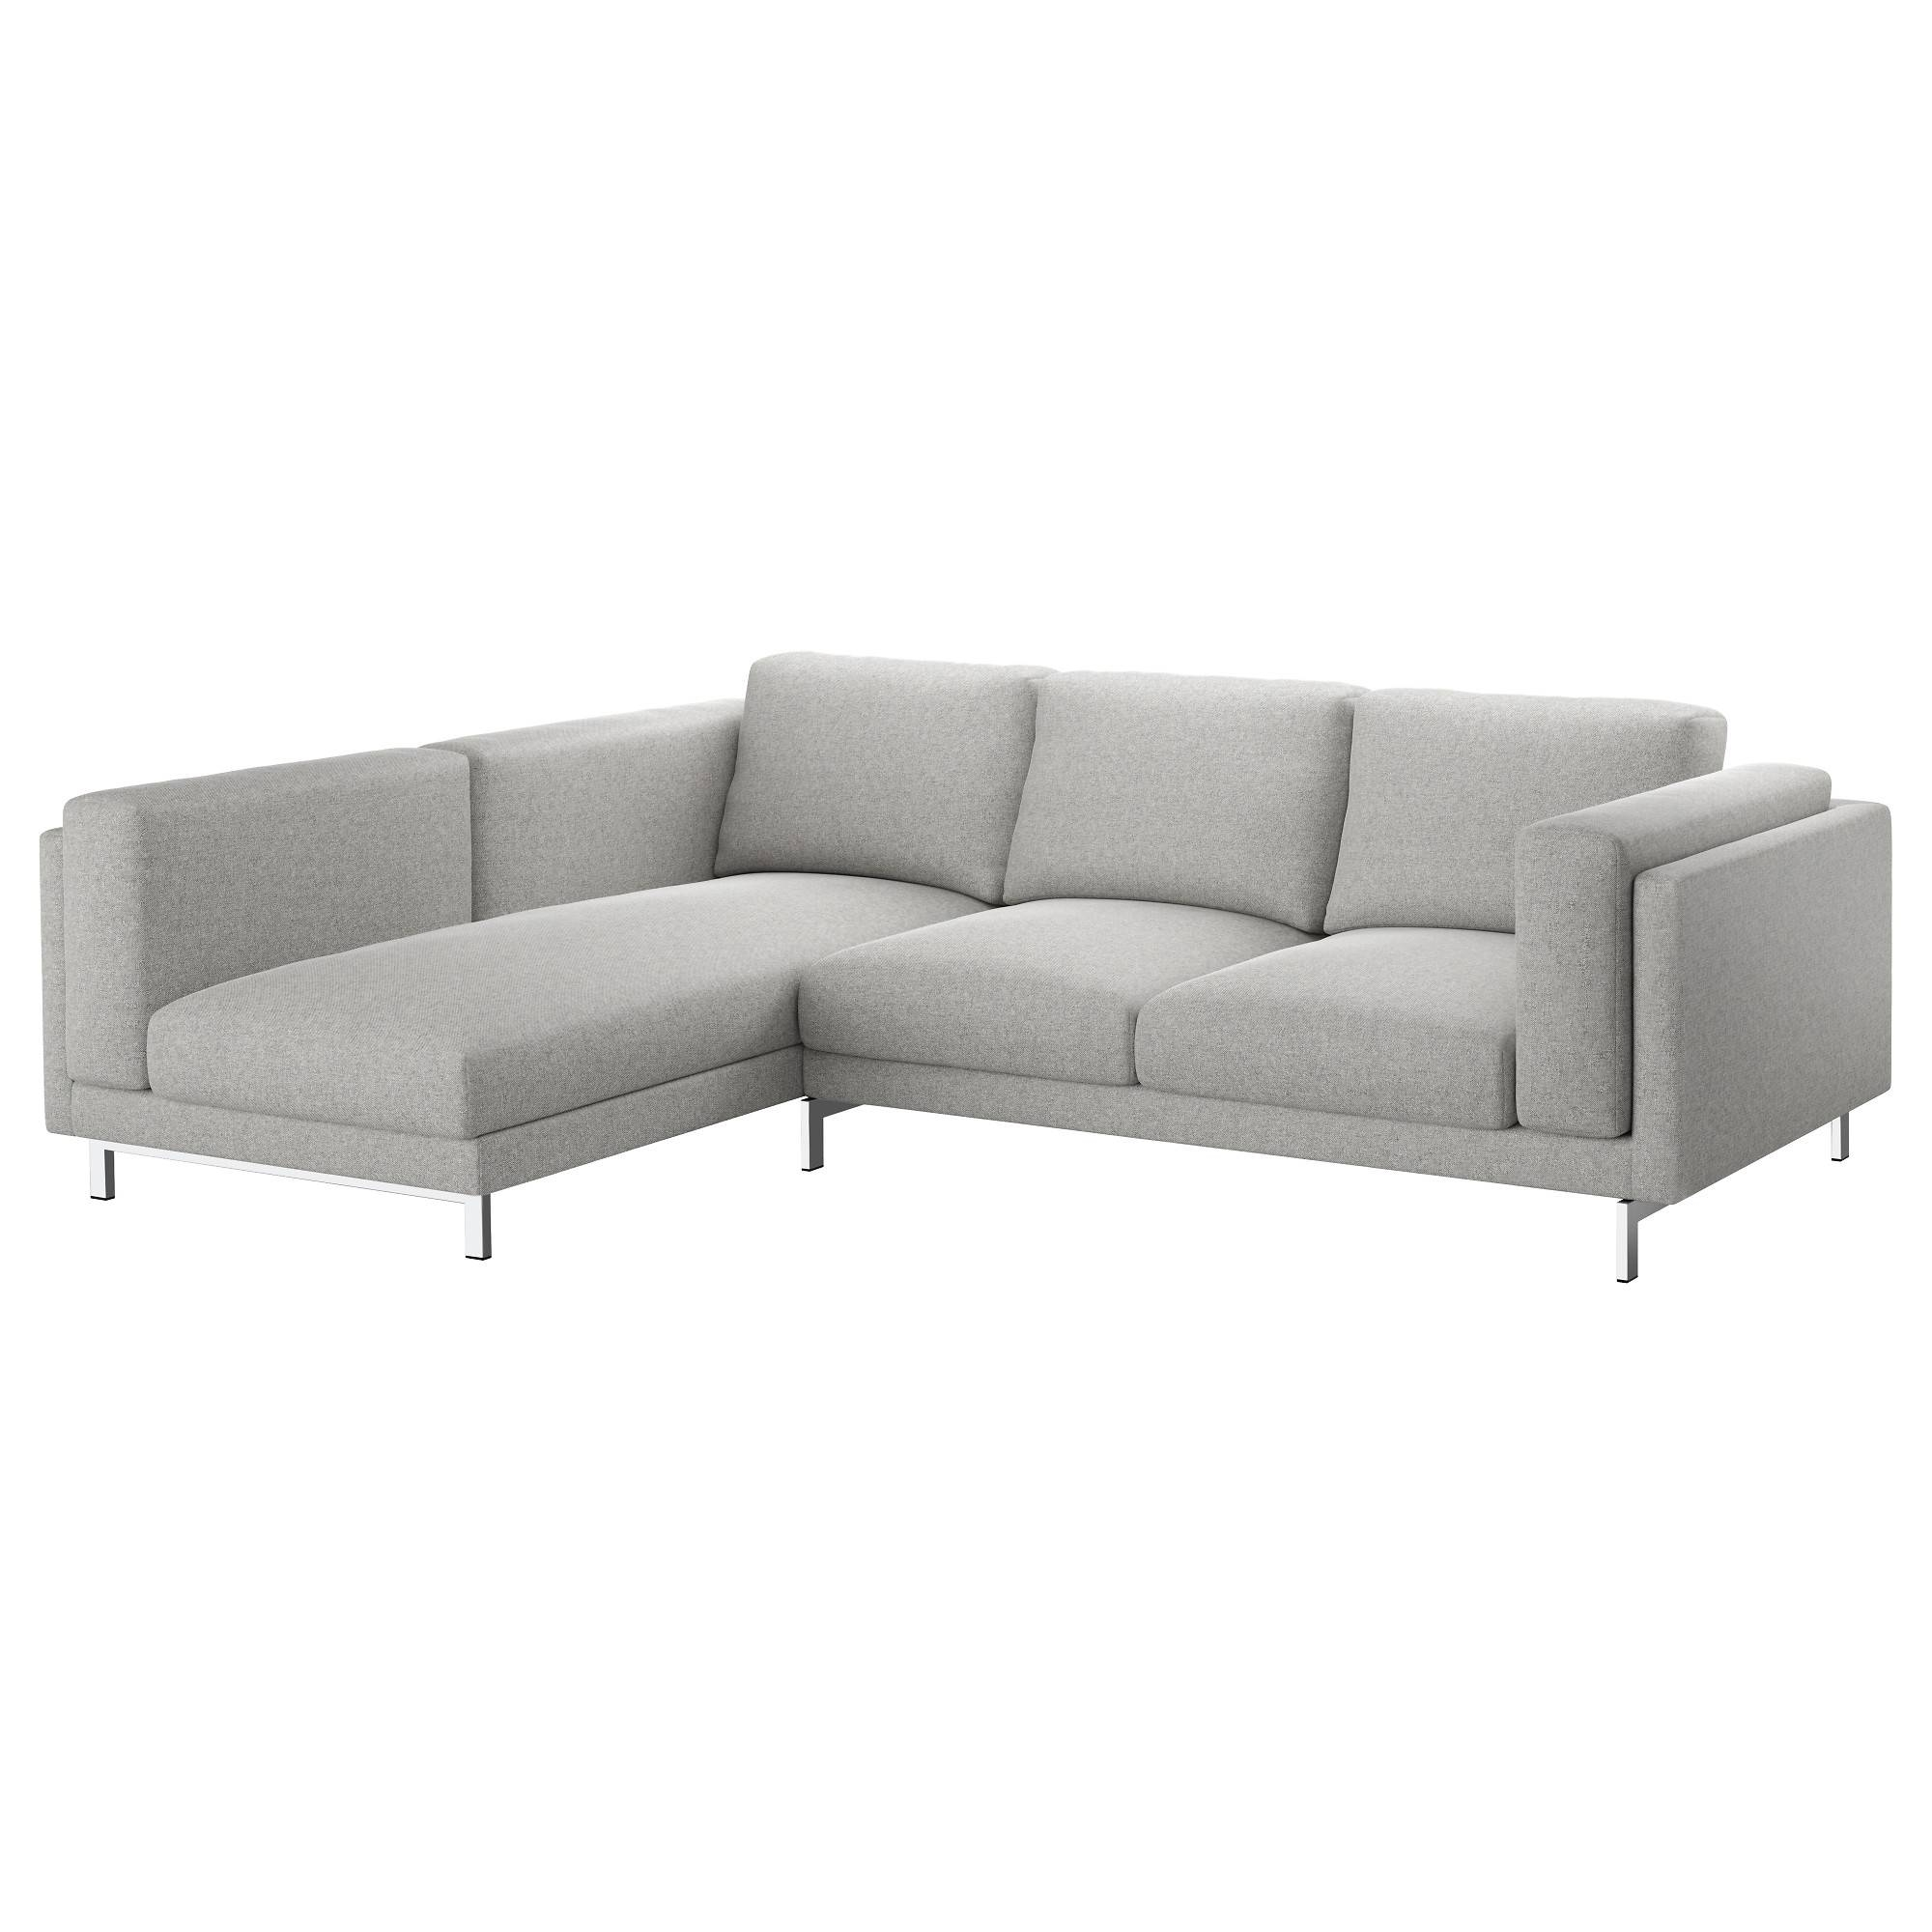 Fabric Sofas - Modern & Contemporary - Ikea inside Backless Chaise Sofa (Image 9 of 30)